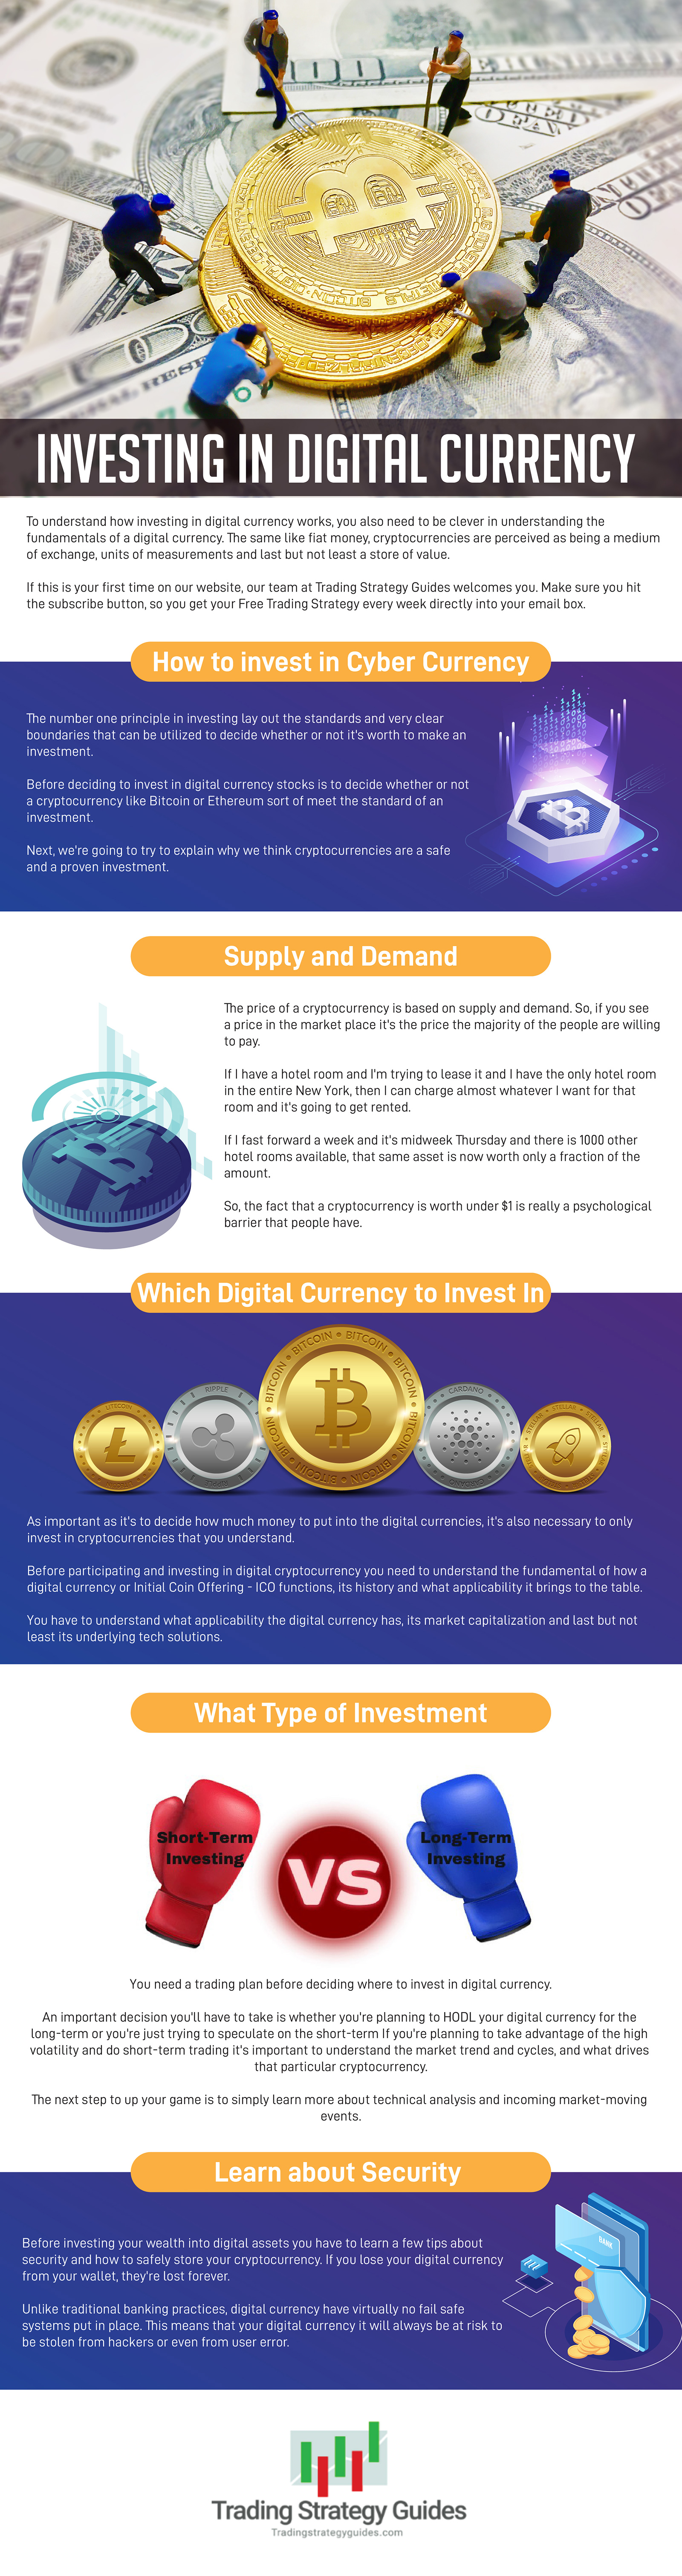 investing in digital cryptocurrency guide